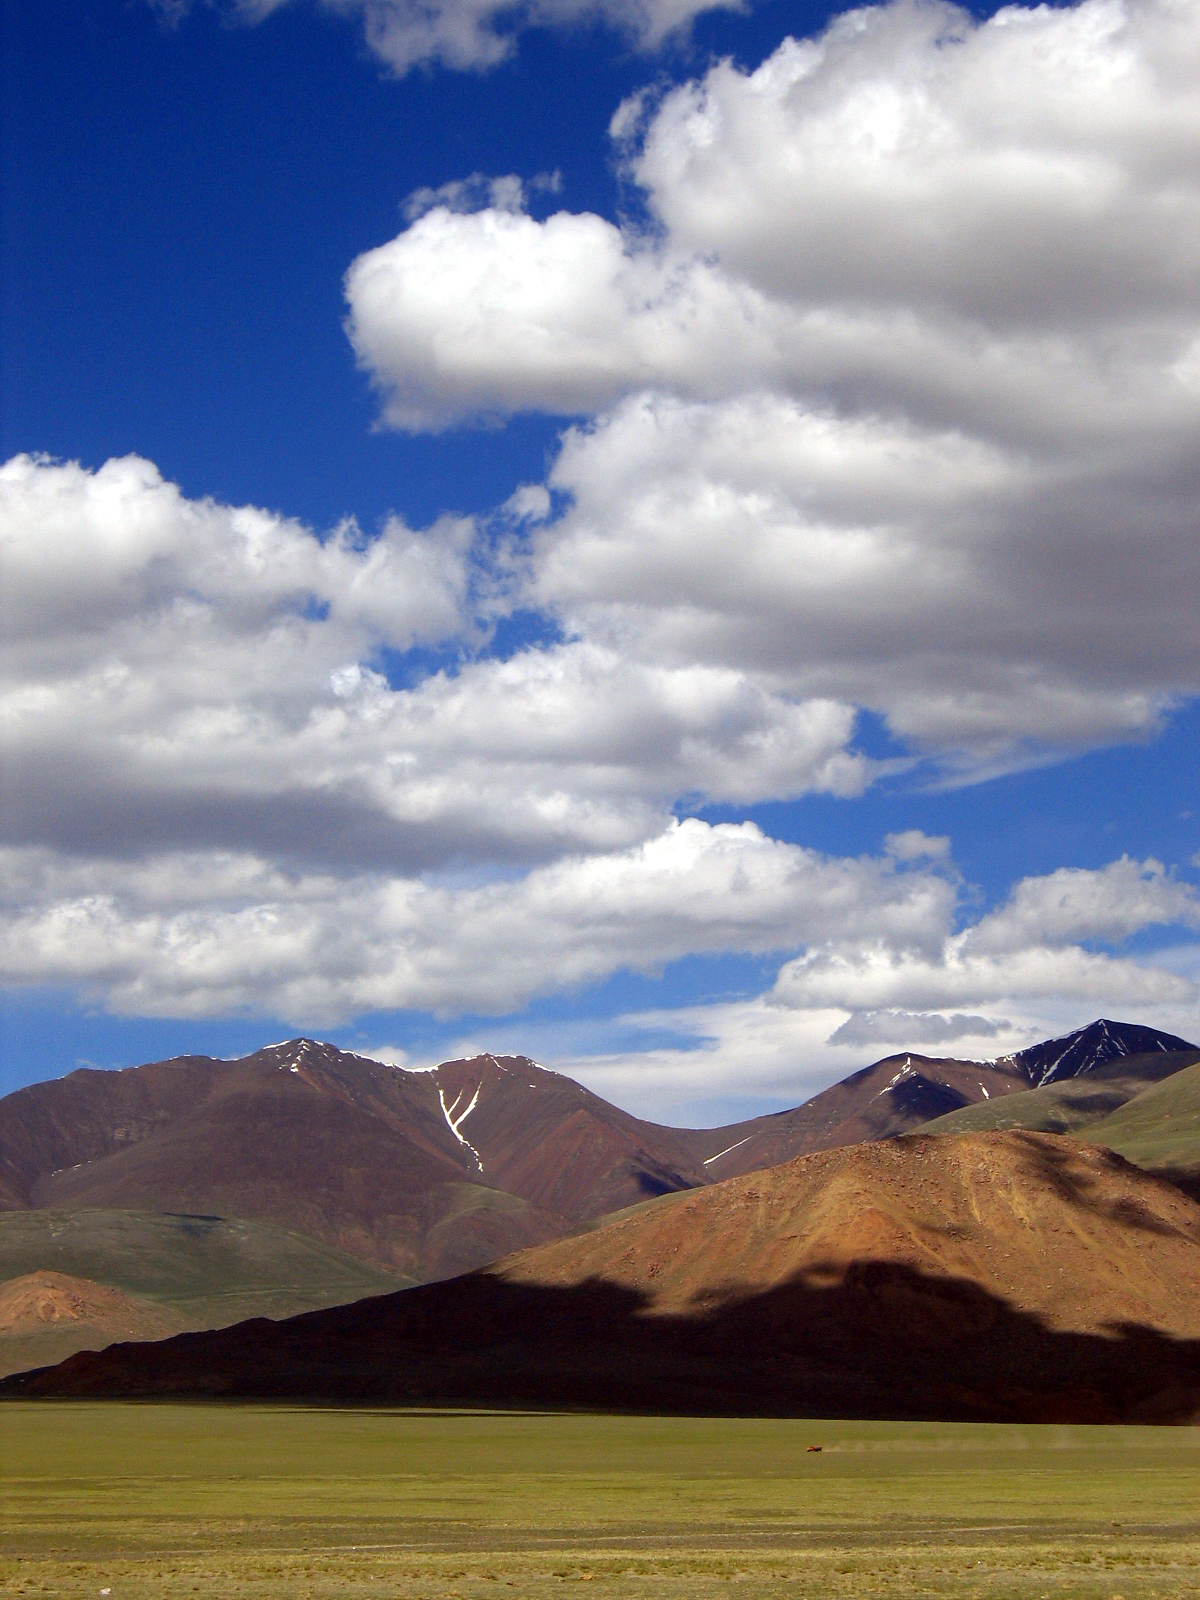 Agriculture in Mongolia - Wikipedia